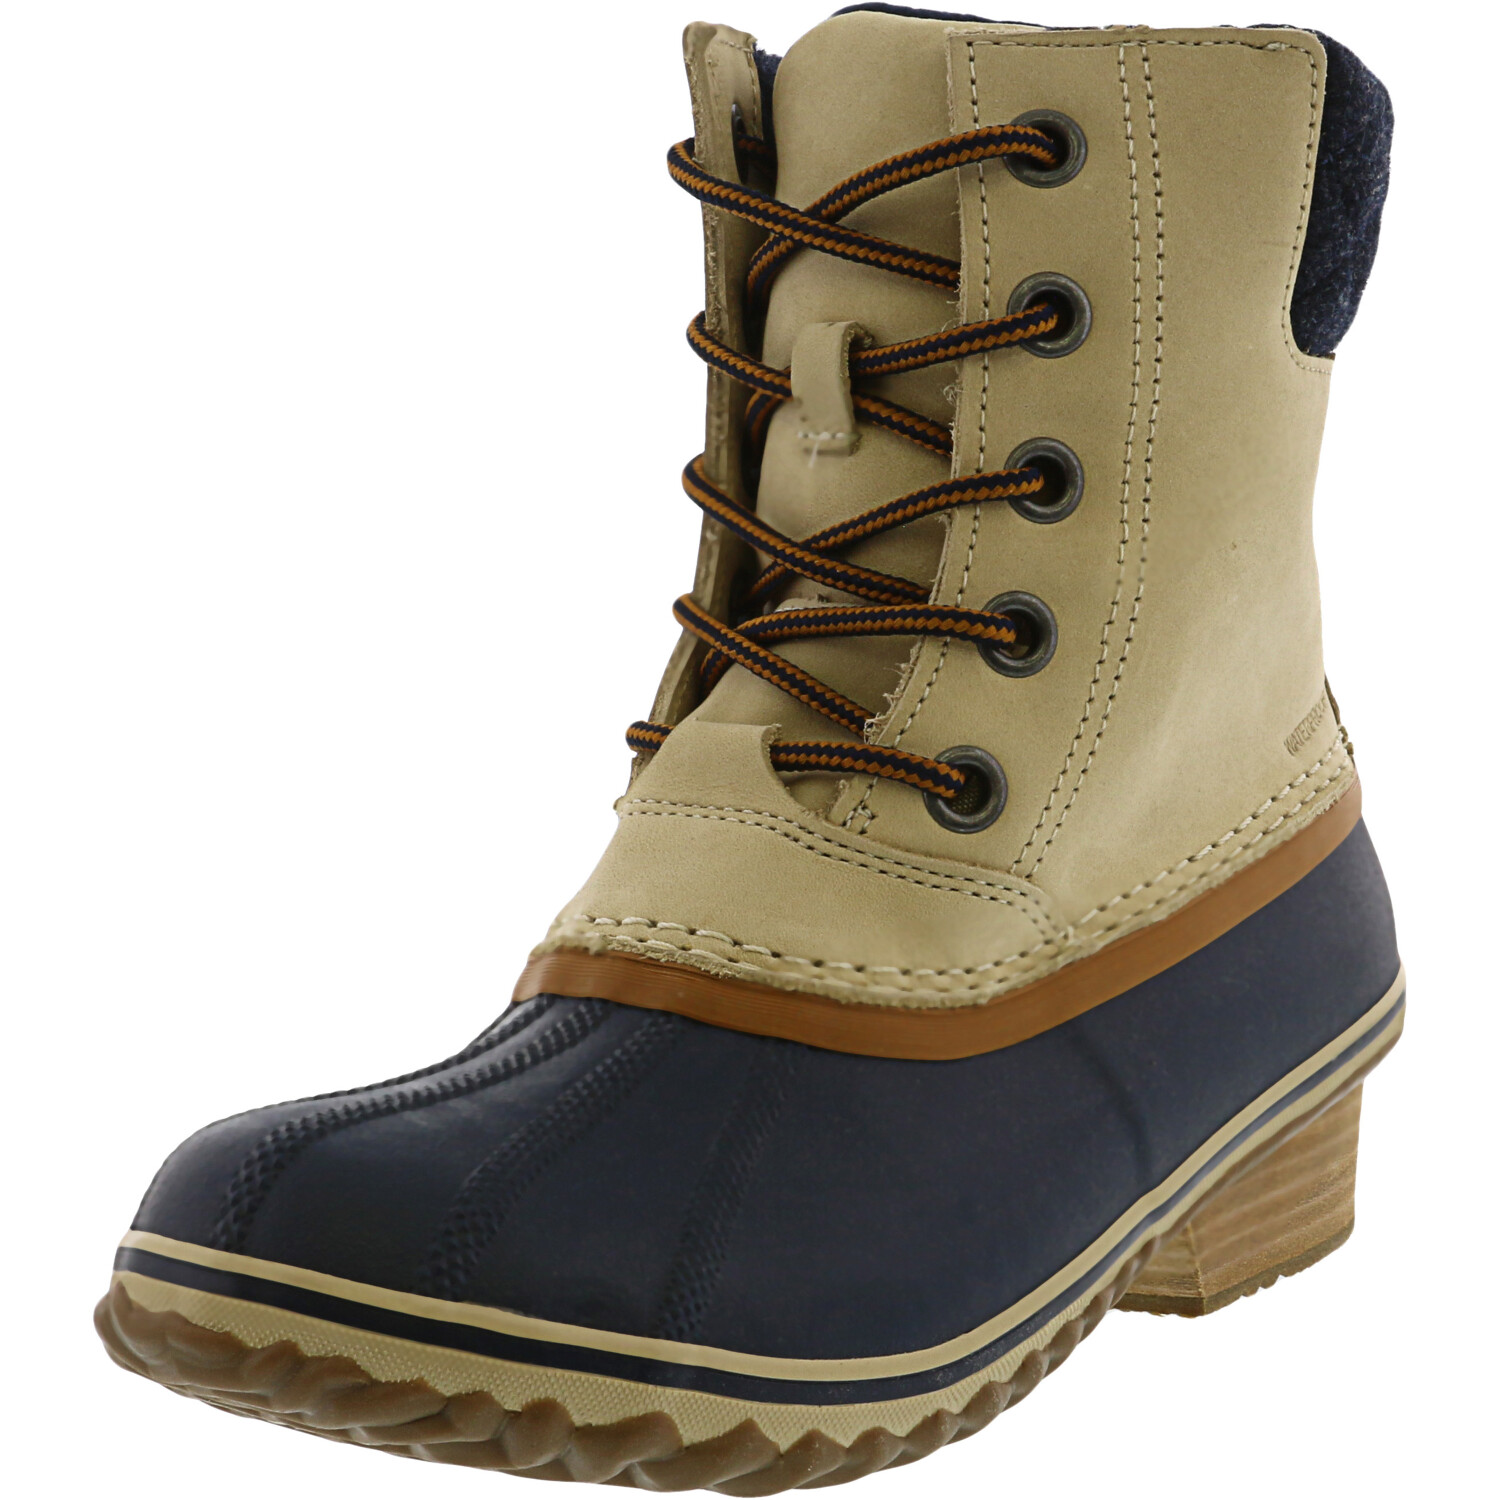 Sorel Women's Slimpack Ii Lace Oatmeal / Collegiate Navy High-Top Leather - 7M